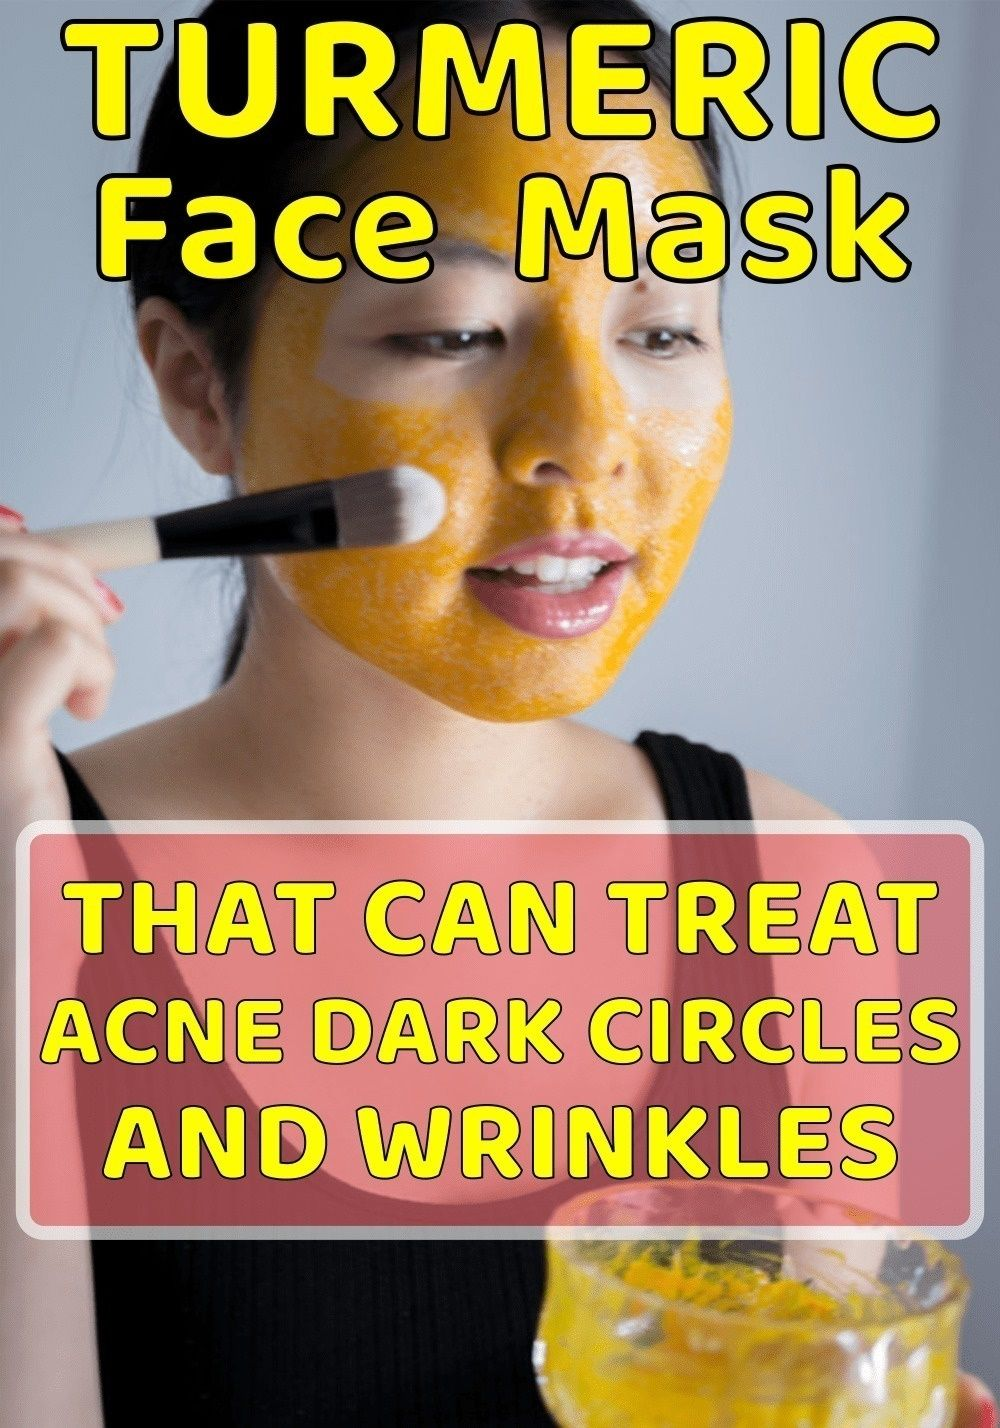 Turmeric Face Mask That Can Treat Acne Dark Circles And ...